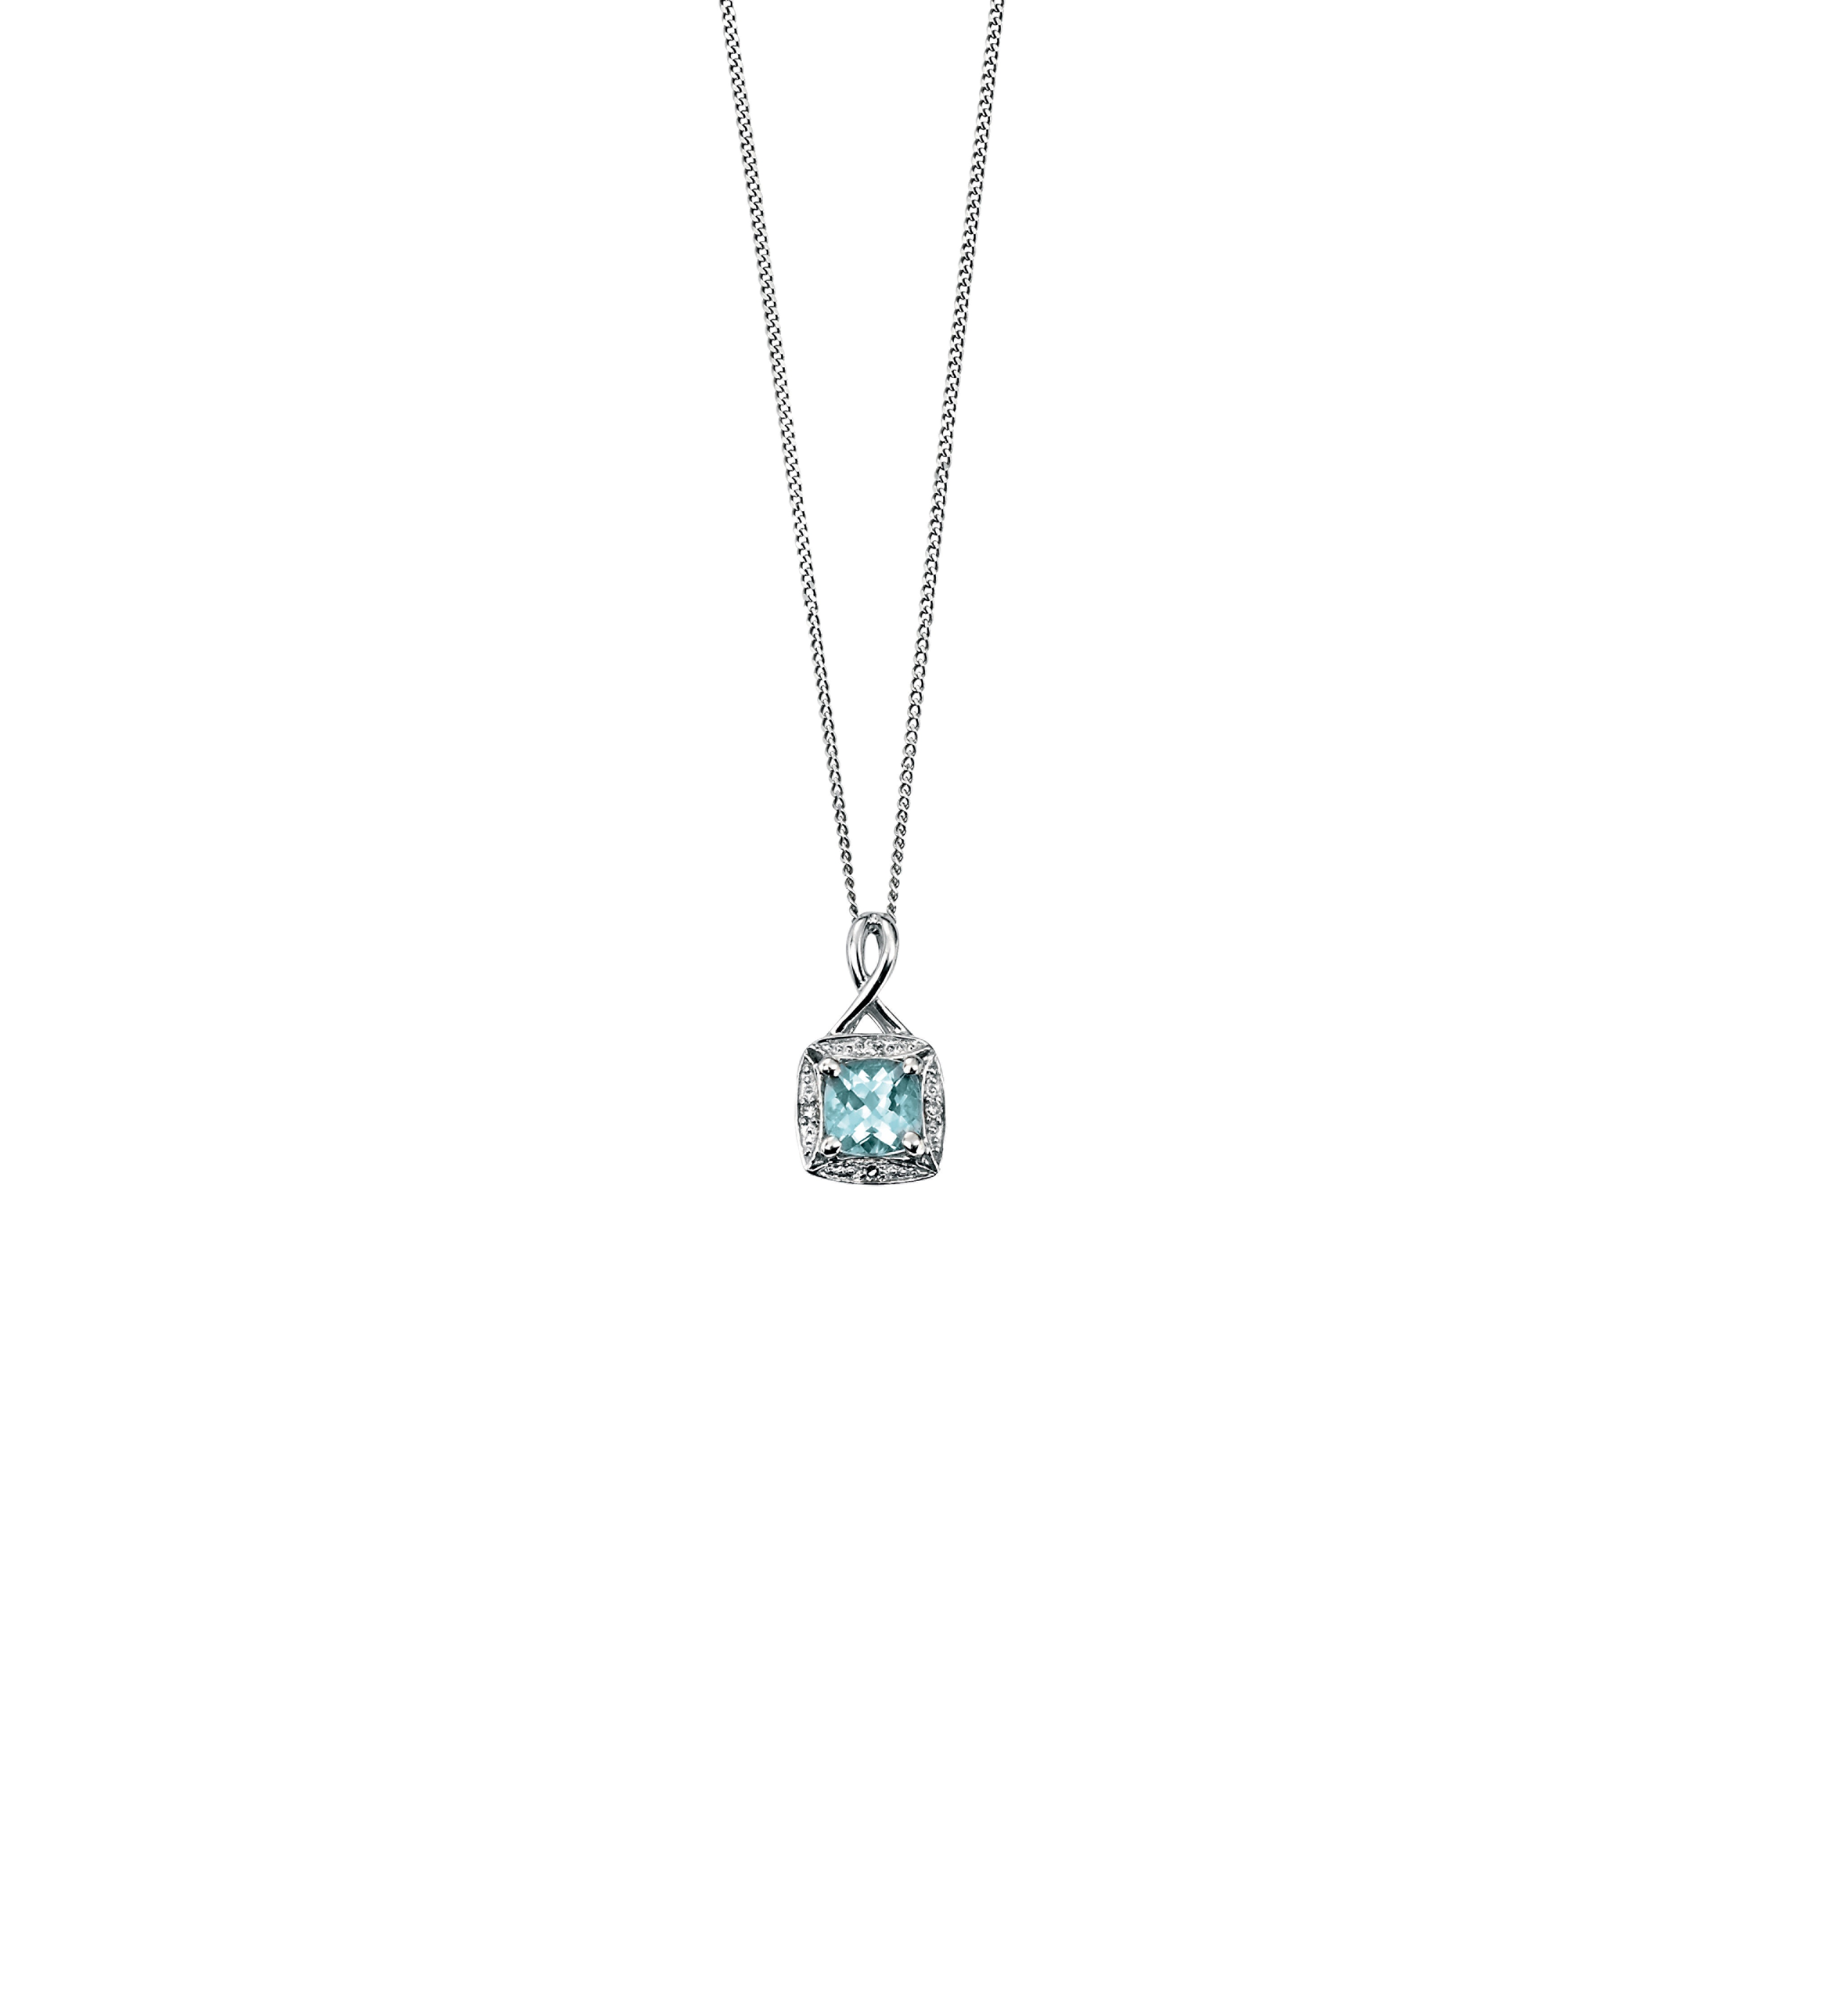 7a1c16a671fd3 9ct White Gold aquamarine pendant with twisted bale